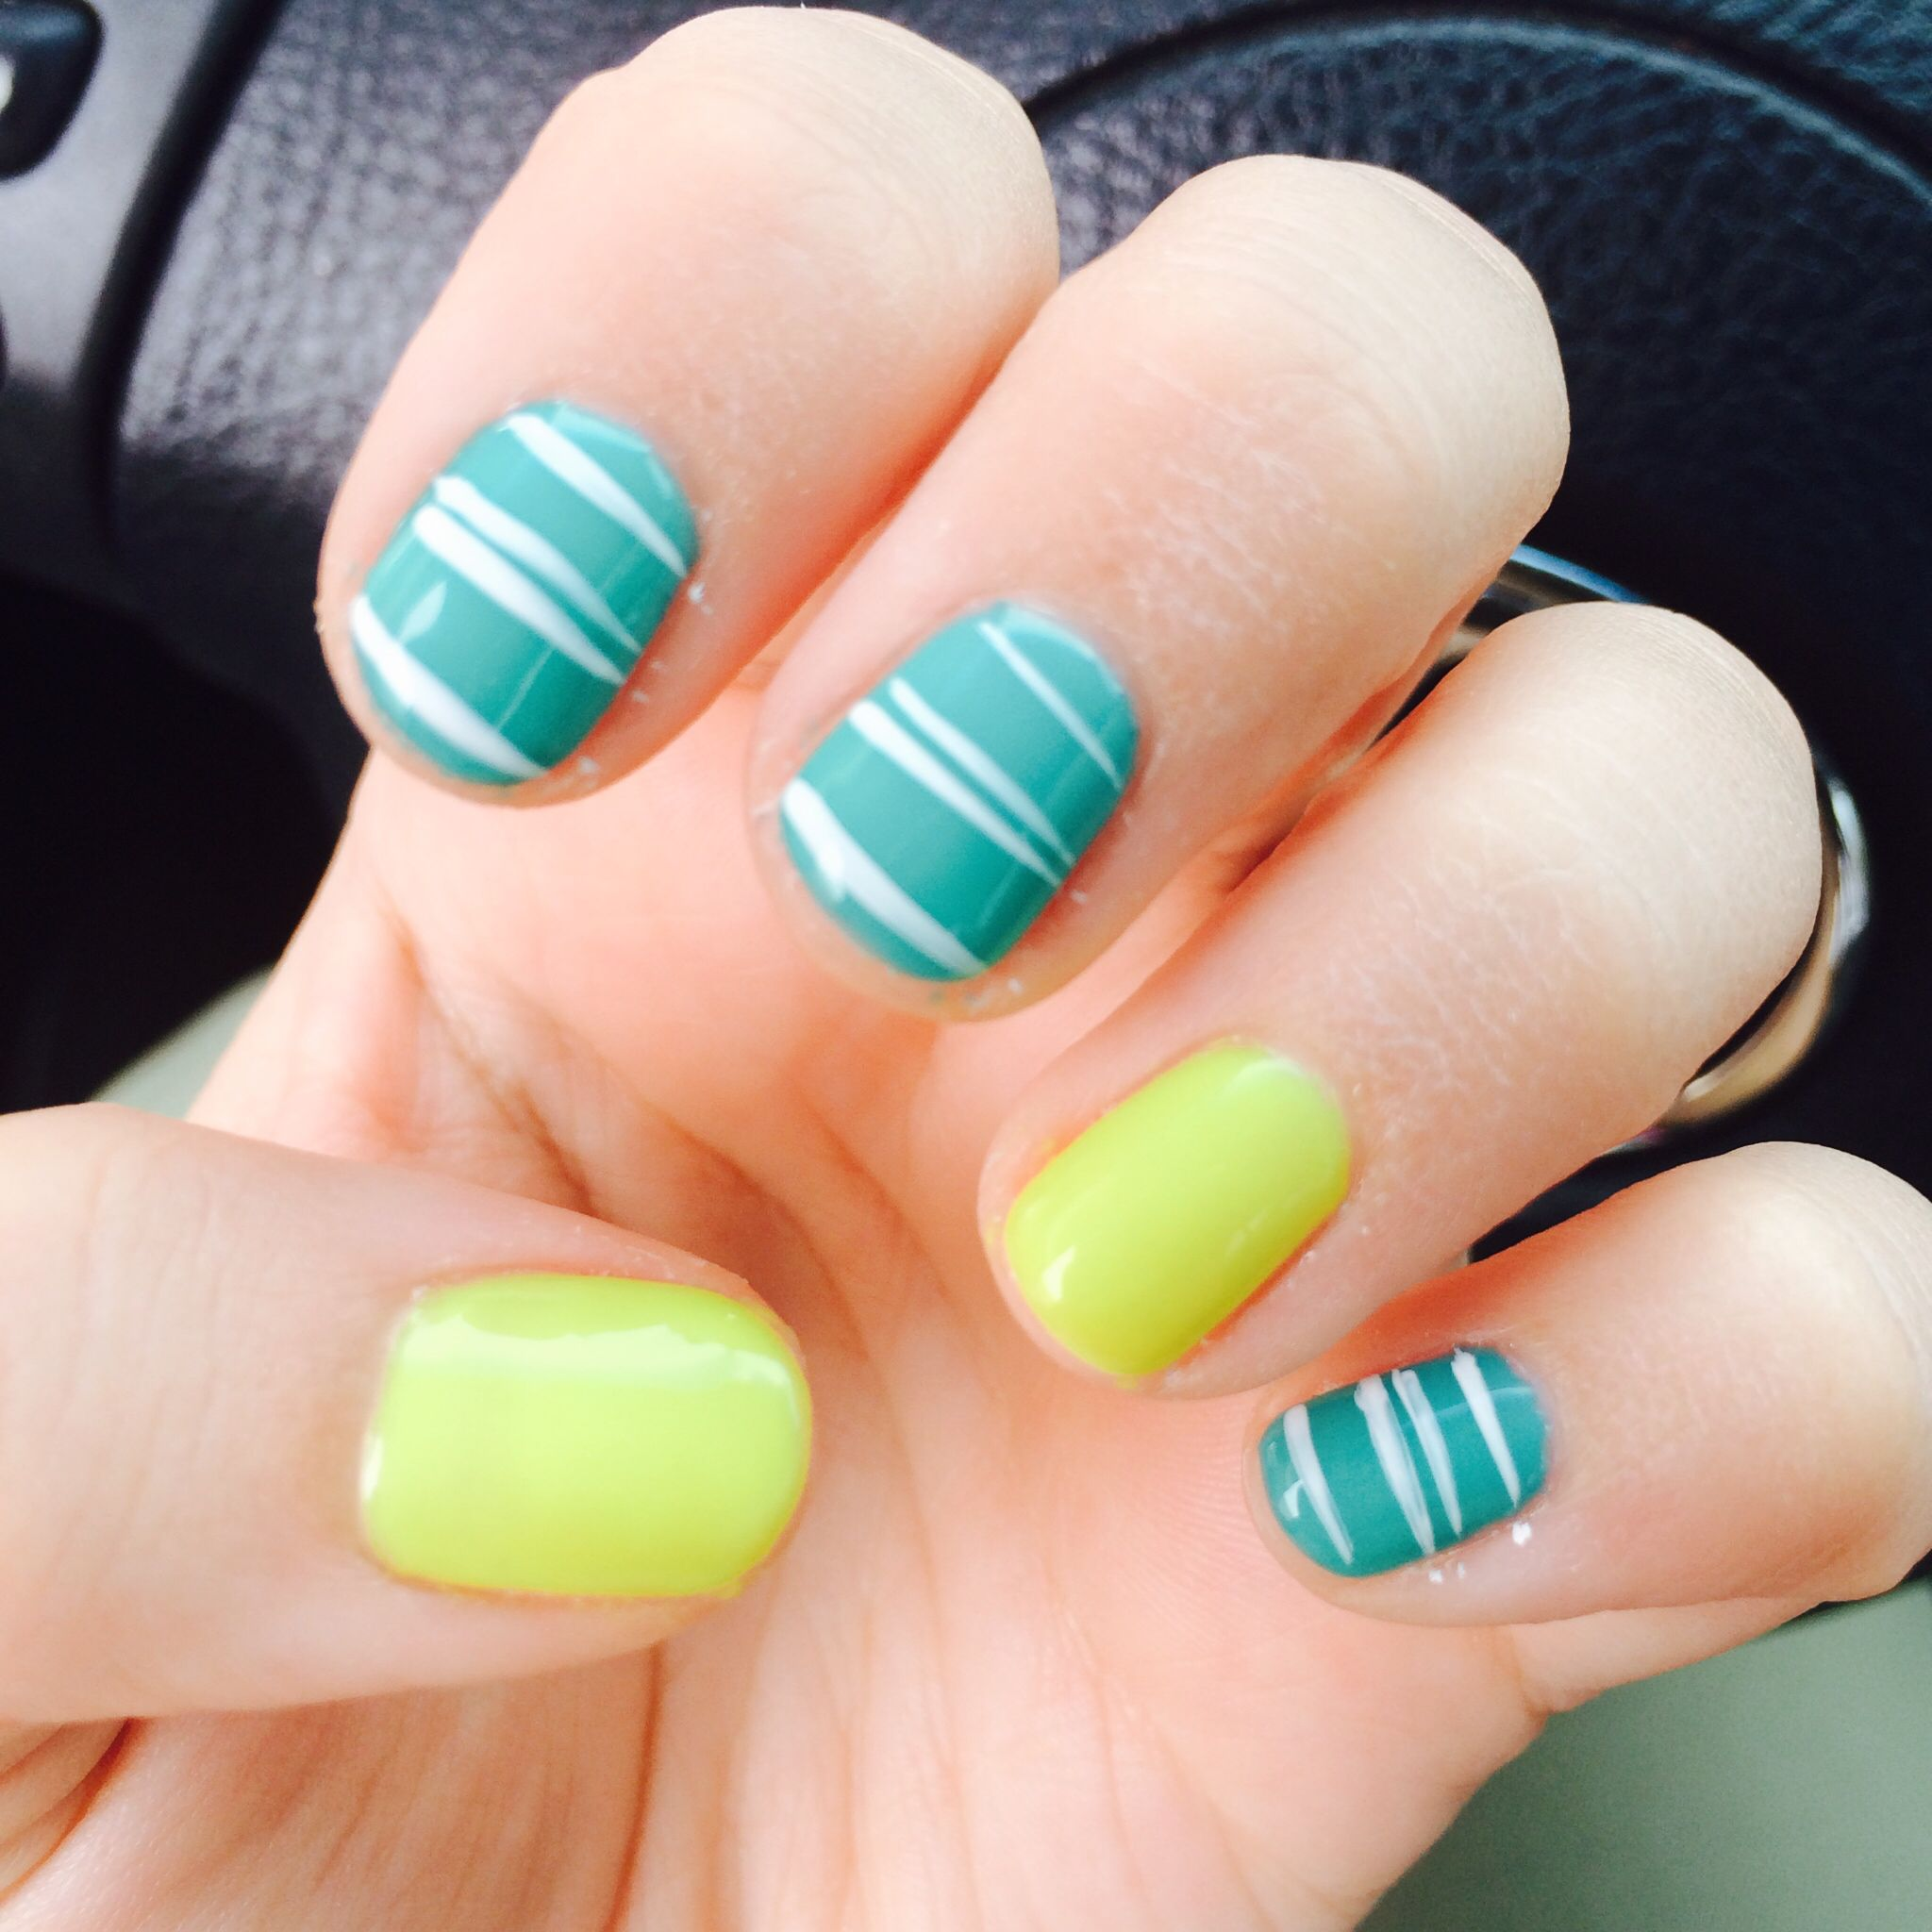 Yellow Nail Polish Toenails: Neon Yellow And Teal W/white Stripes. Perfect Summer Nails